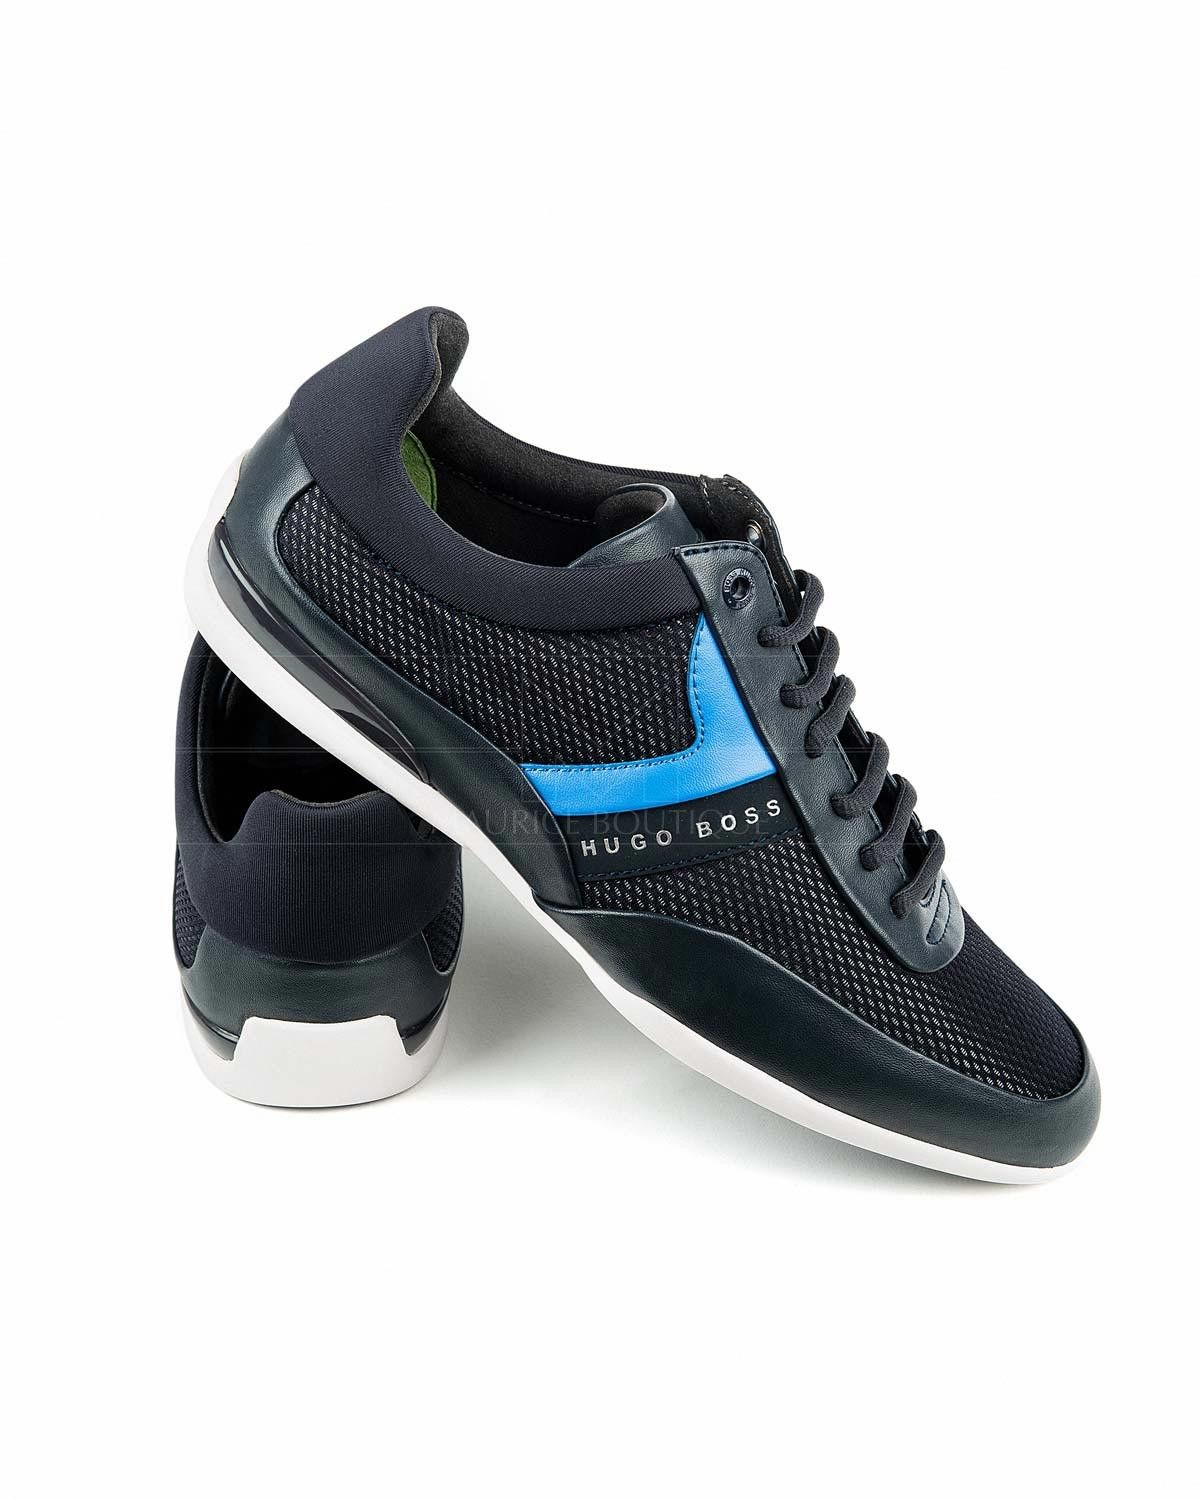 ba3f6cb72 Zapatillas Hugo Boss Lighter Lowp - Celeste   Marino en 2019